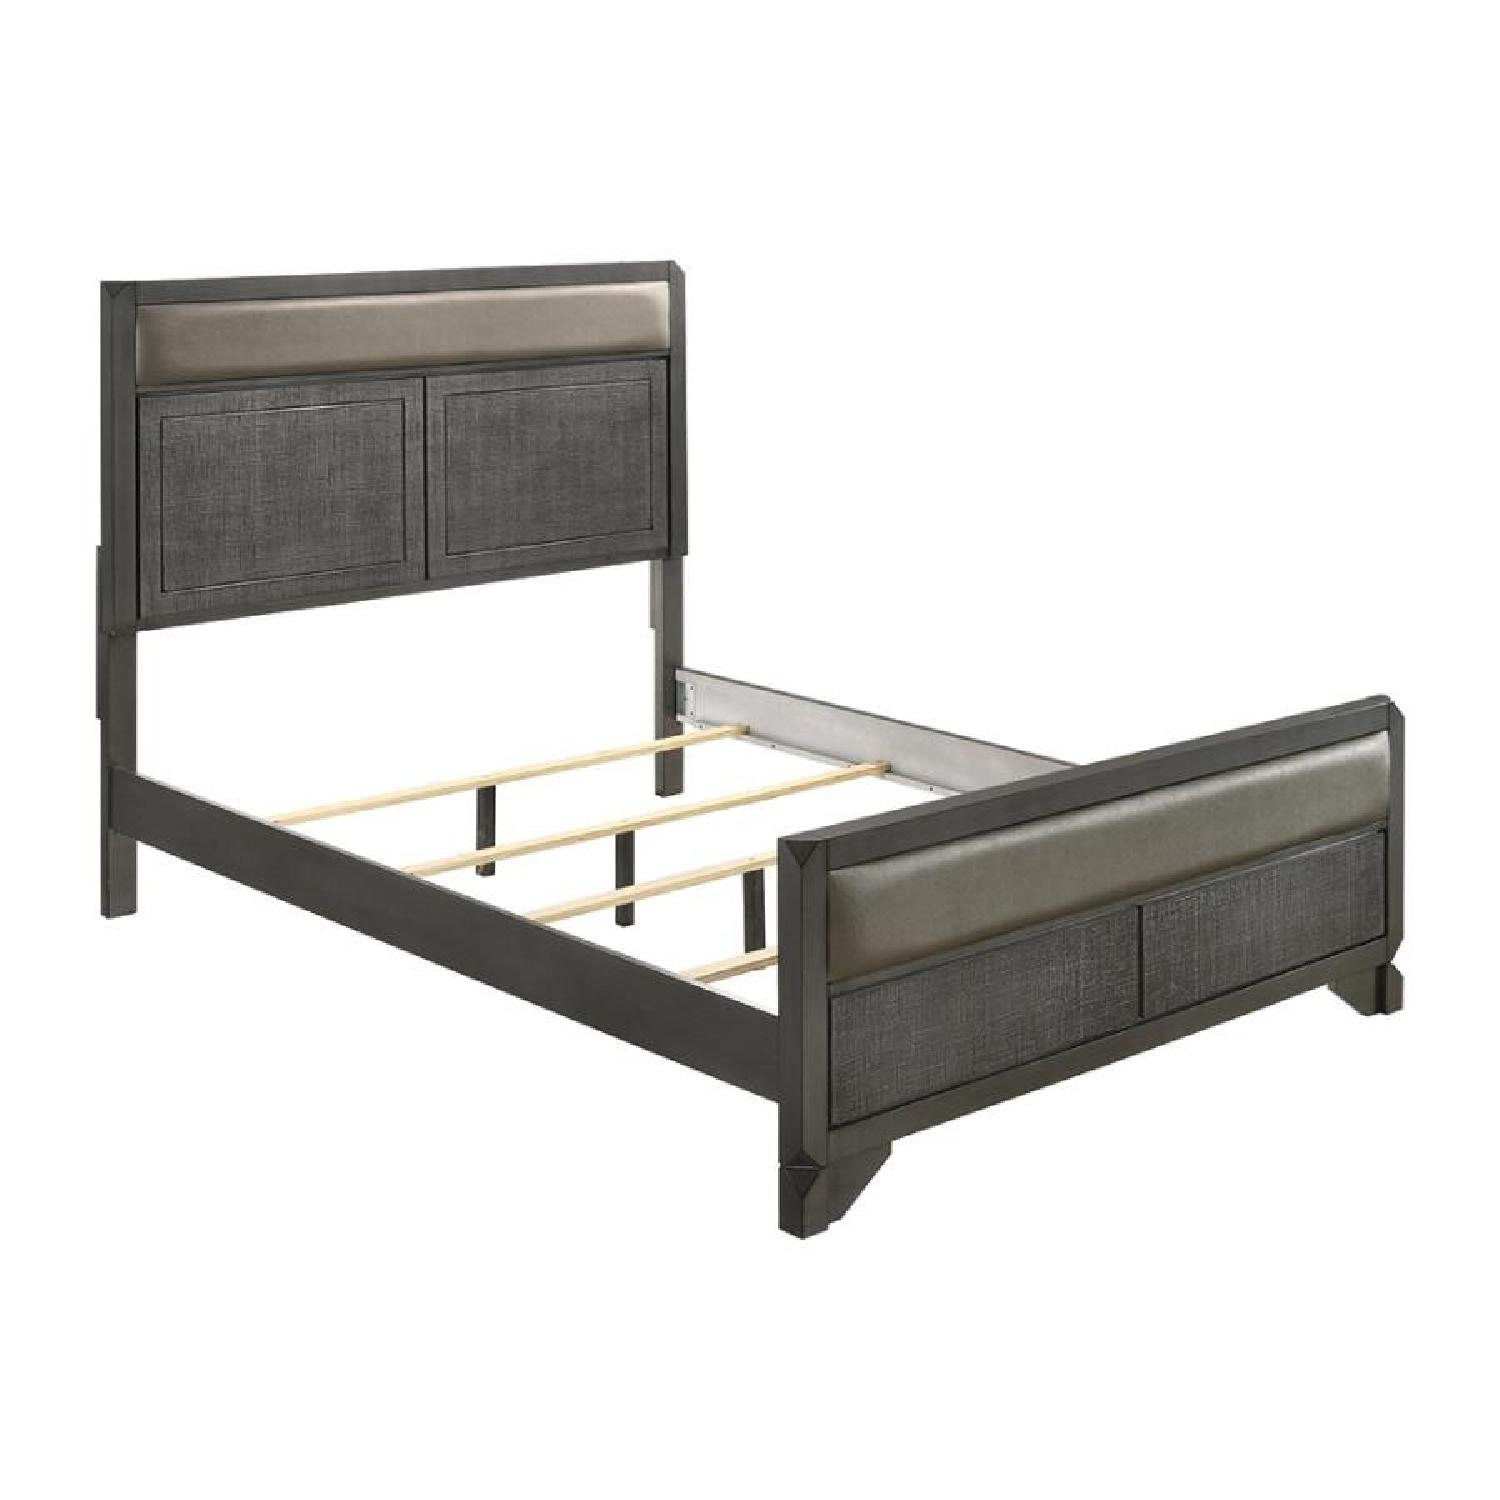 Leatherette Queen Bed in Caviar Finish w/ Woven Texture - image-4